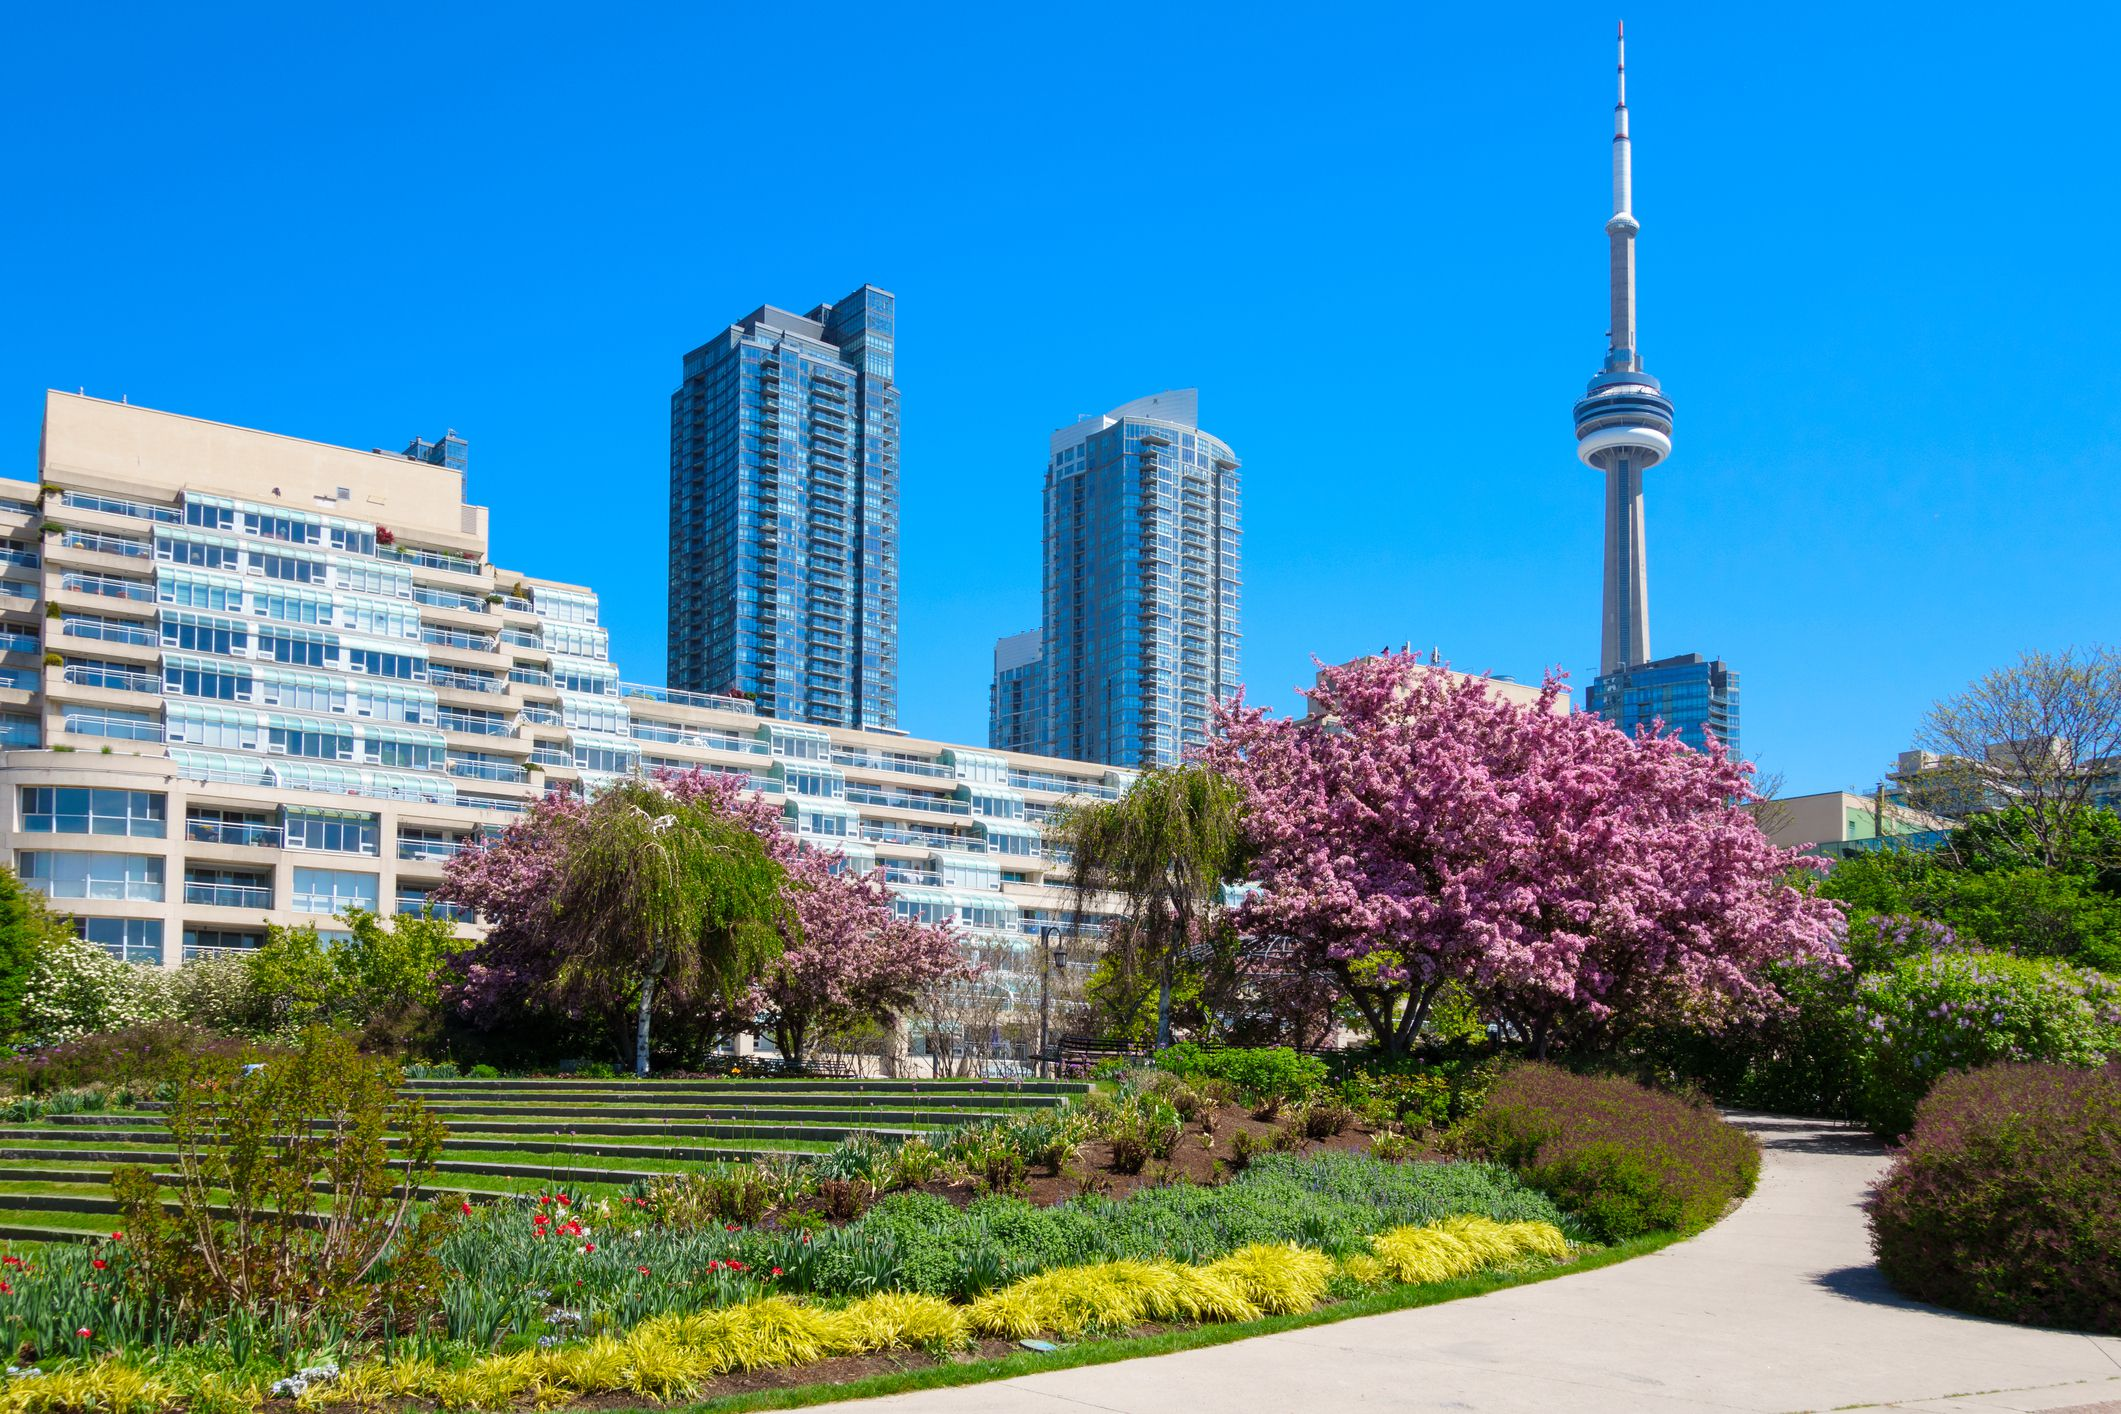 Best Dating Spots in Toronto Choose Your Most Preferred Location